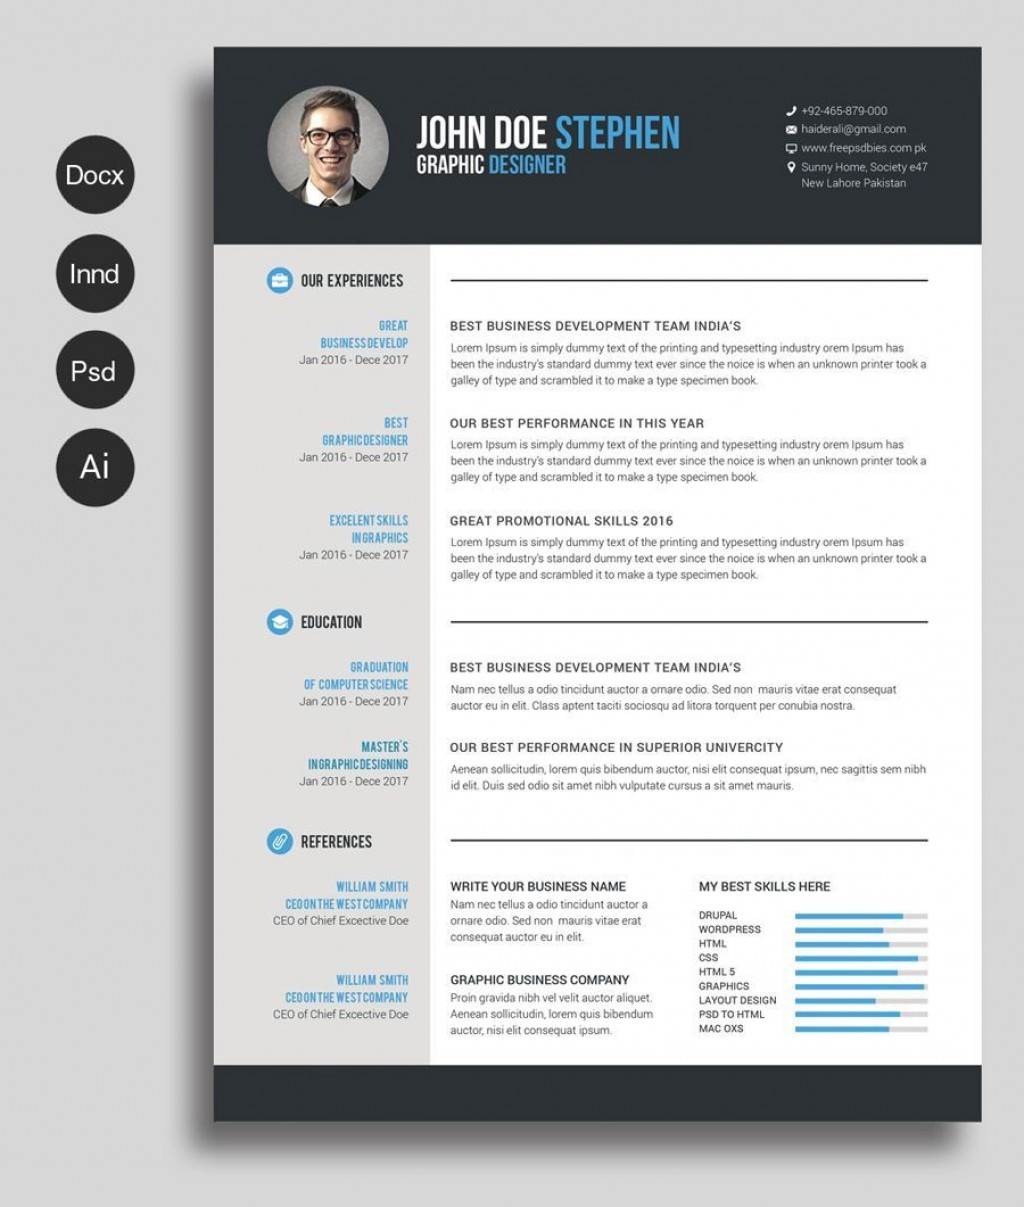 000 Wonderful Resume Template Free Word Download Sample  Cv With Photo Malaysia AustraliaLarge